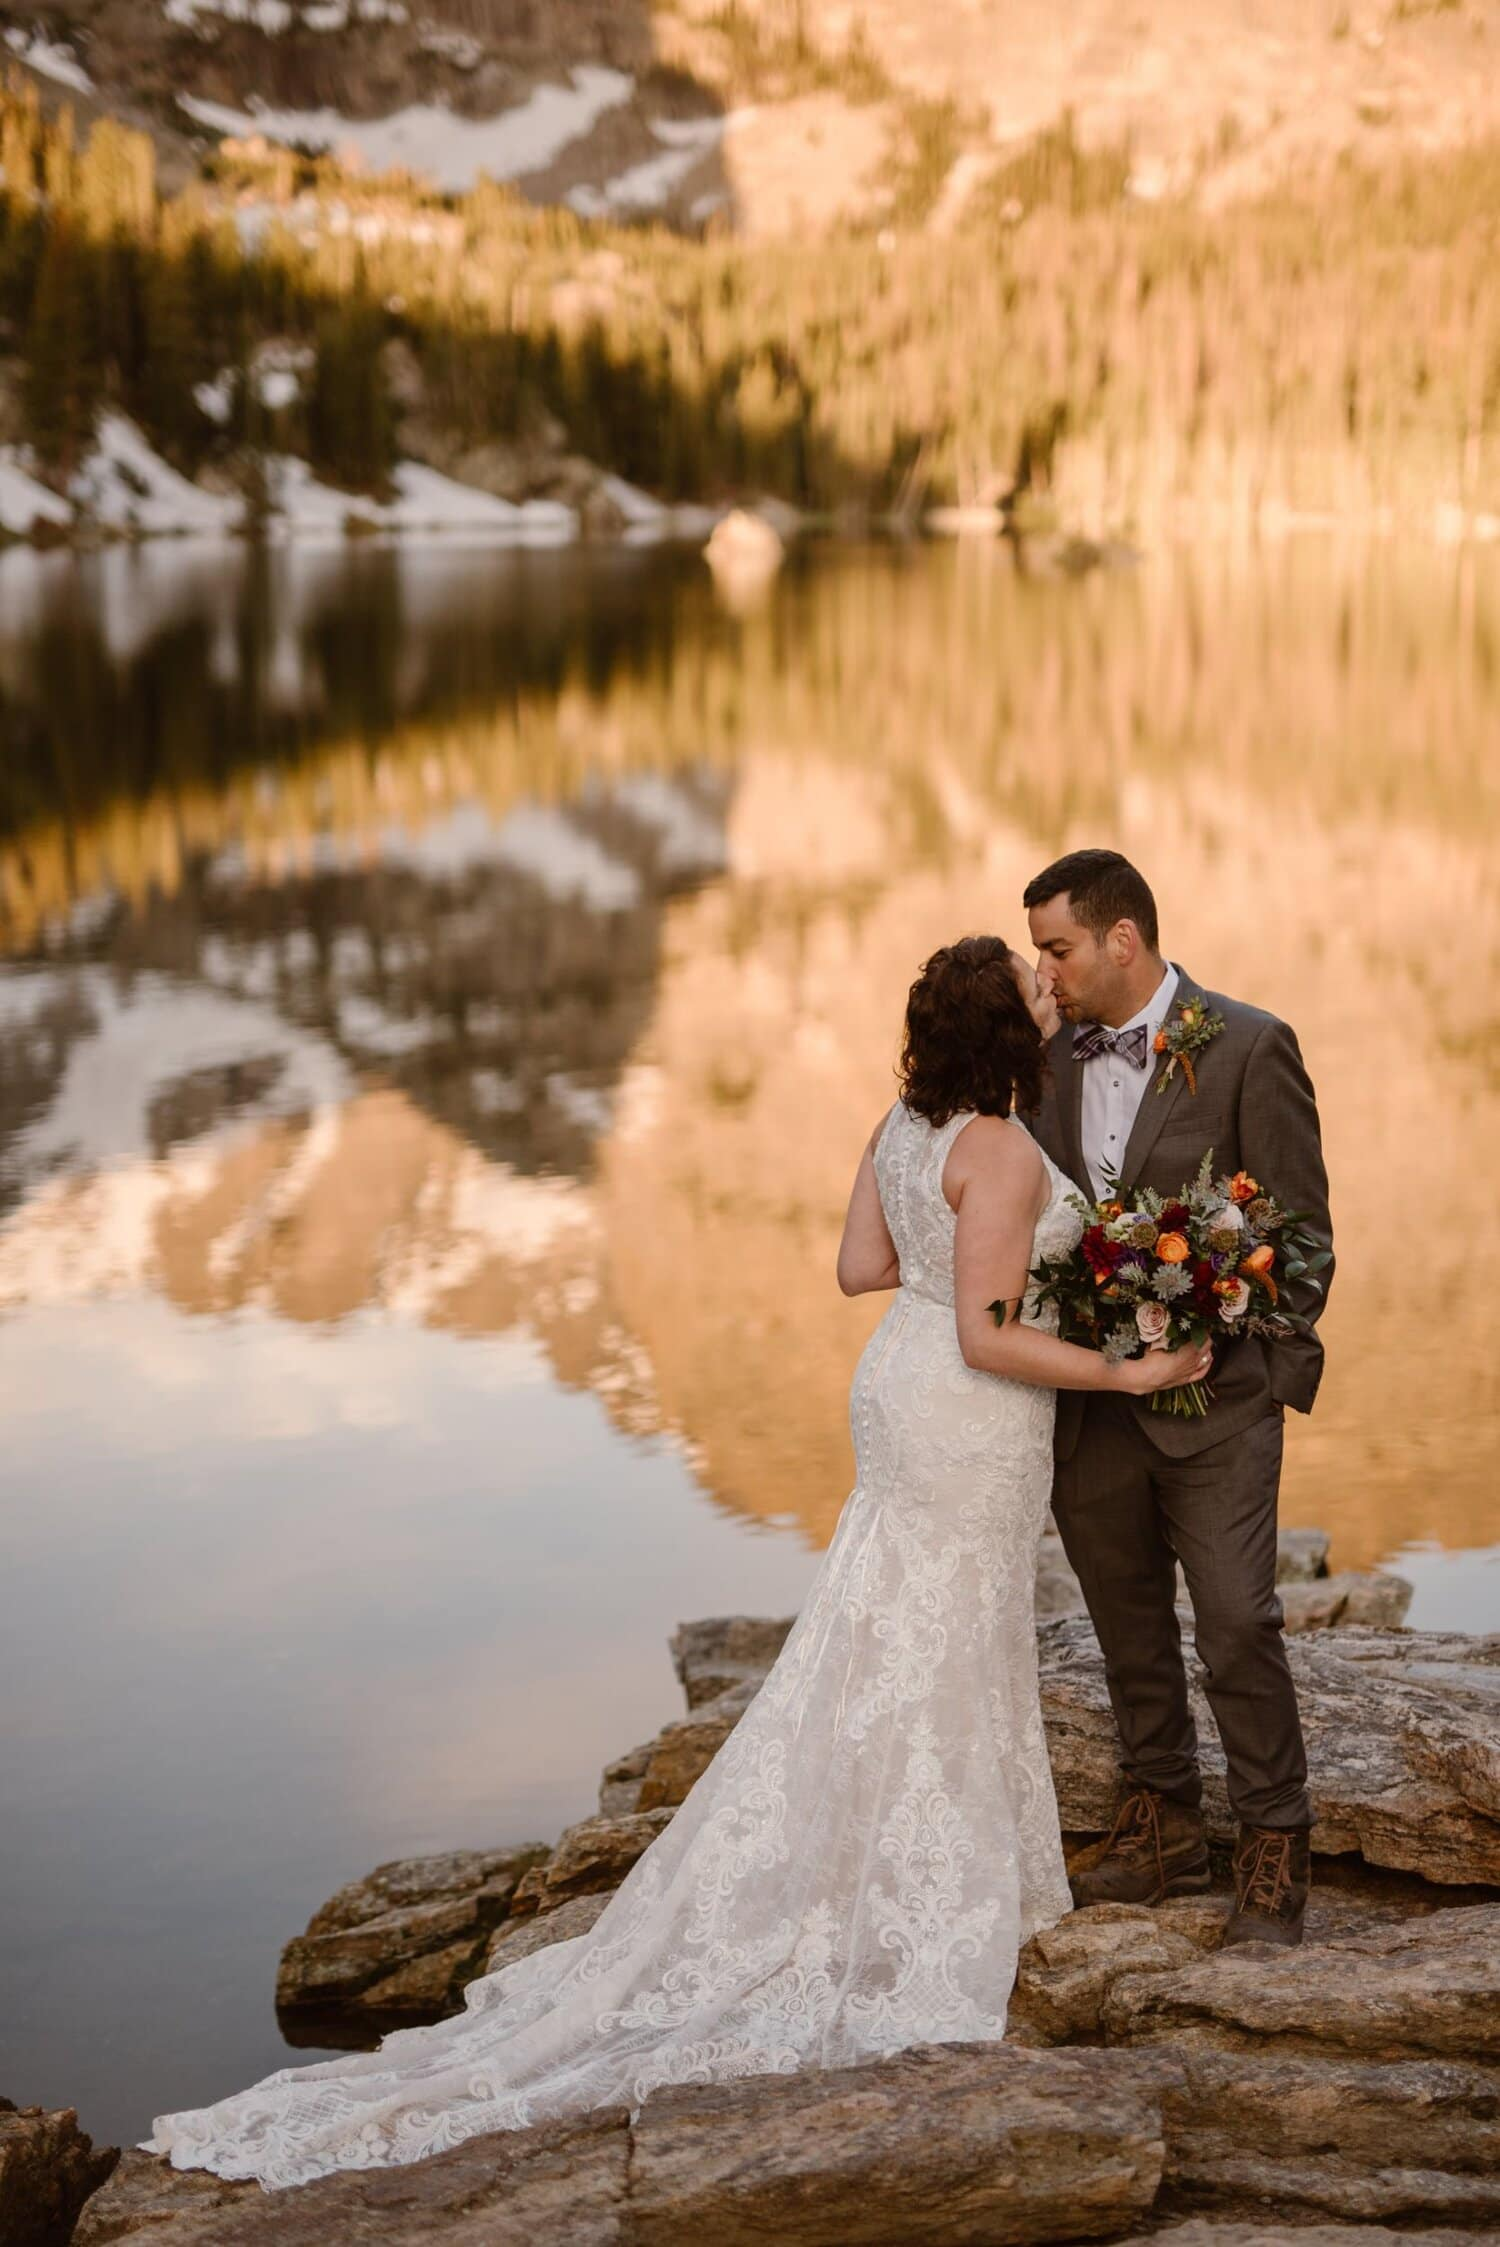 Bride and groom kiss during their elopement ceremony.